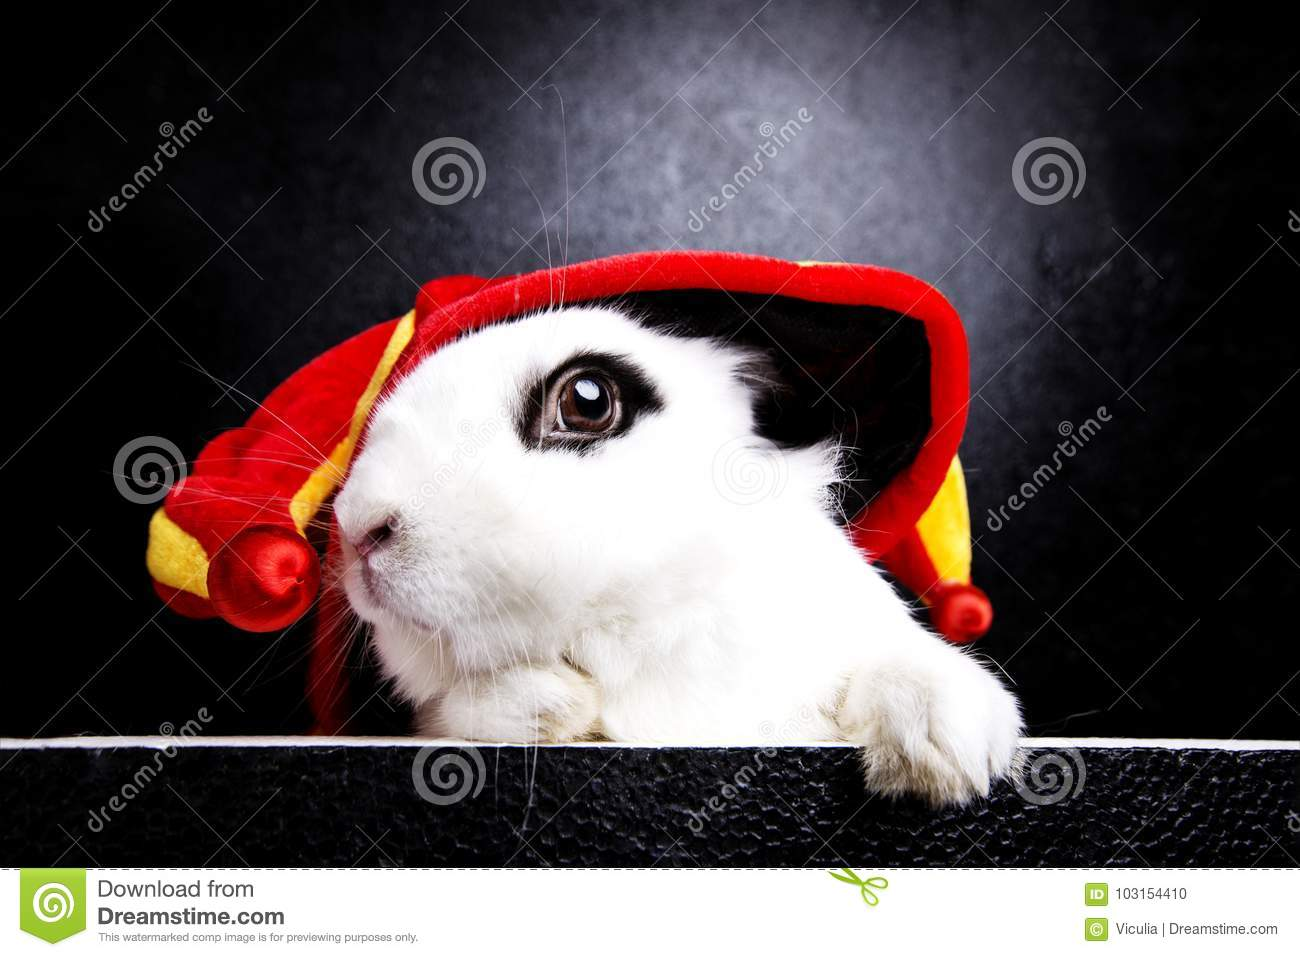 White rabbit with a joker cap on a black background